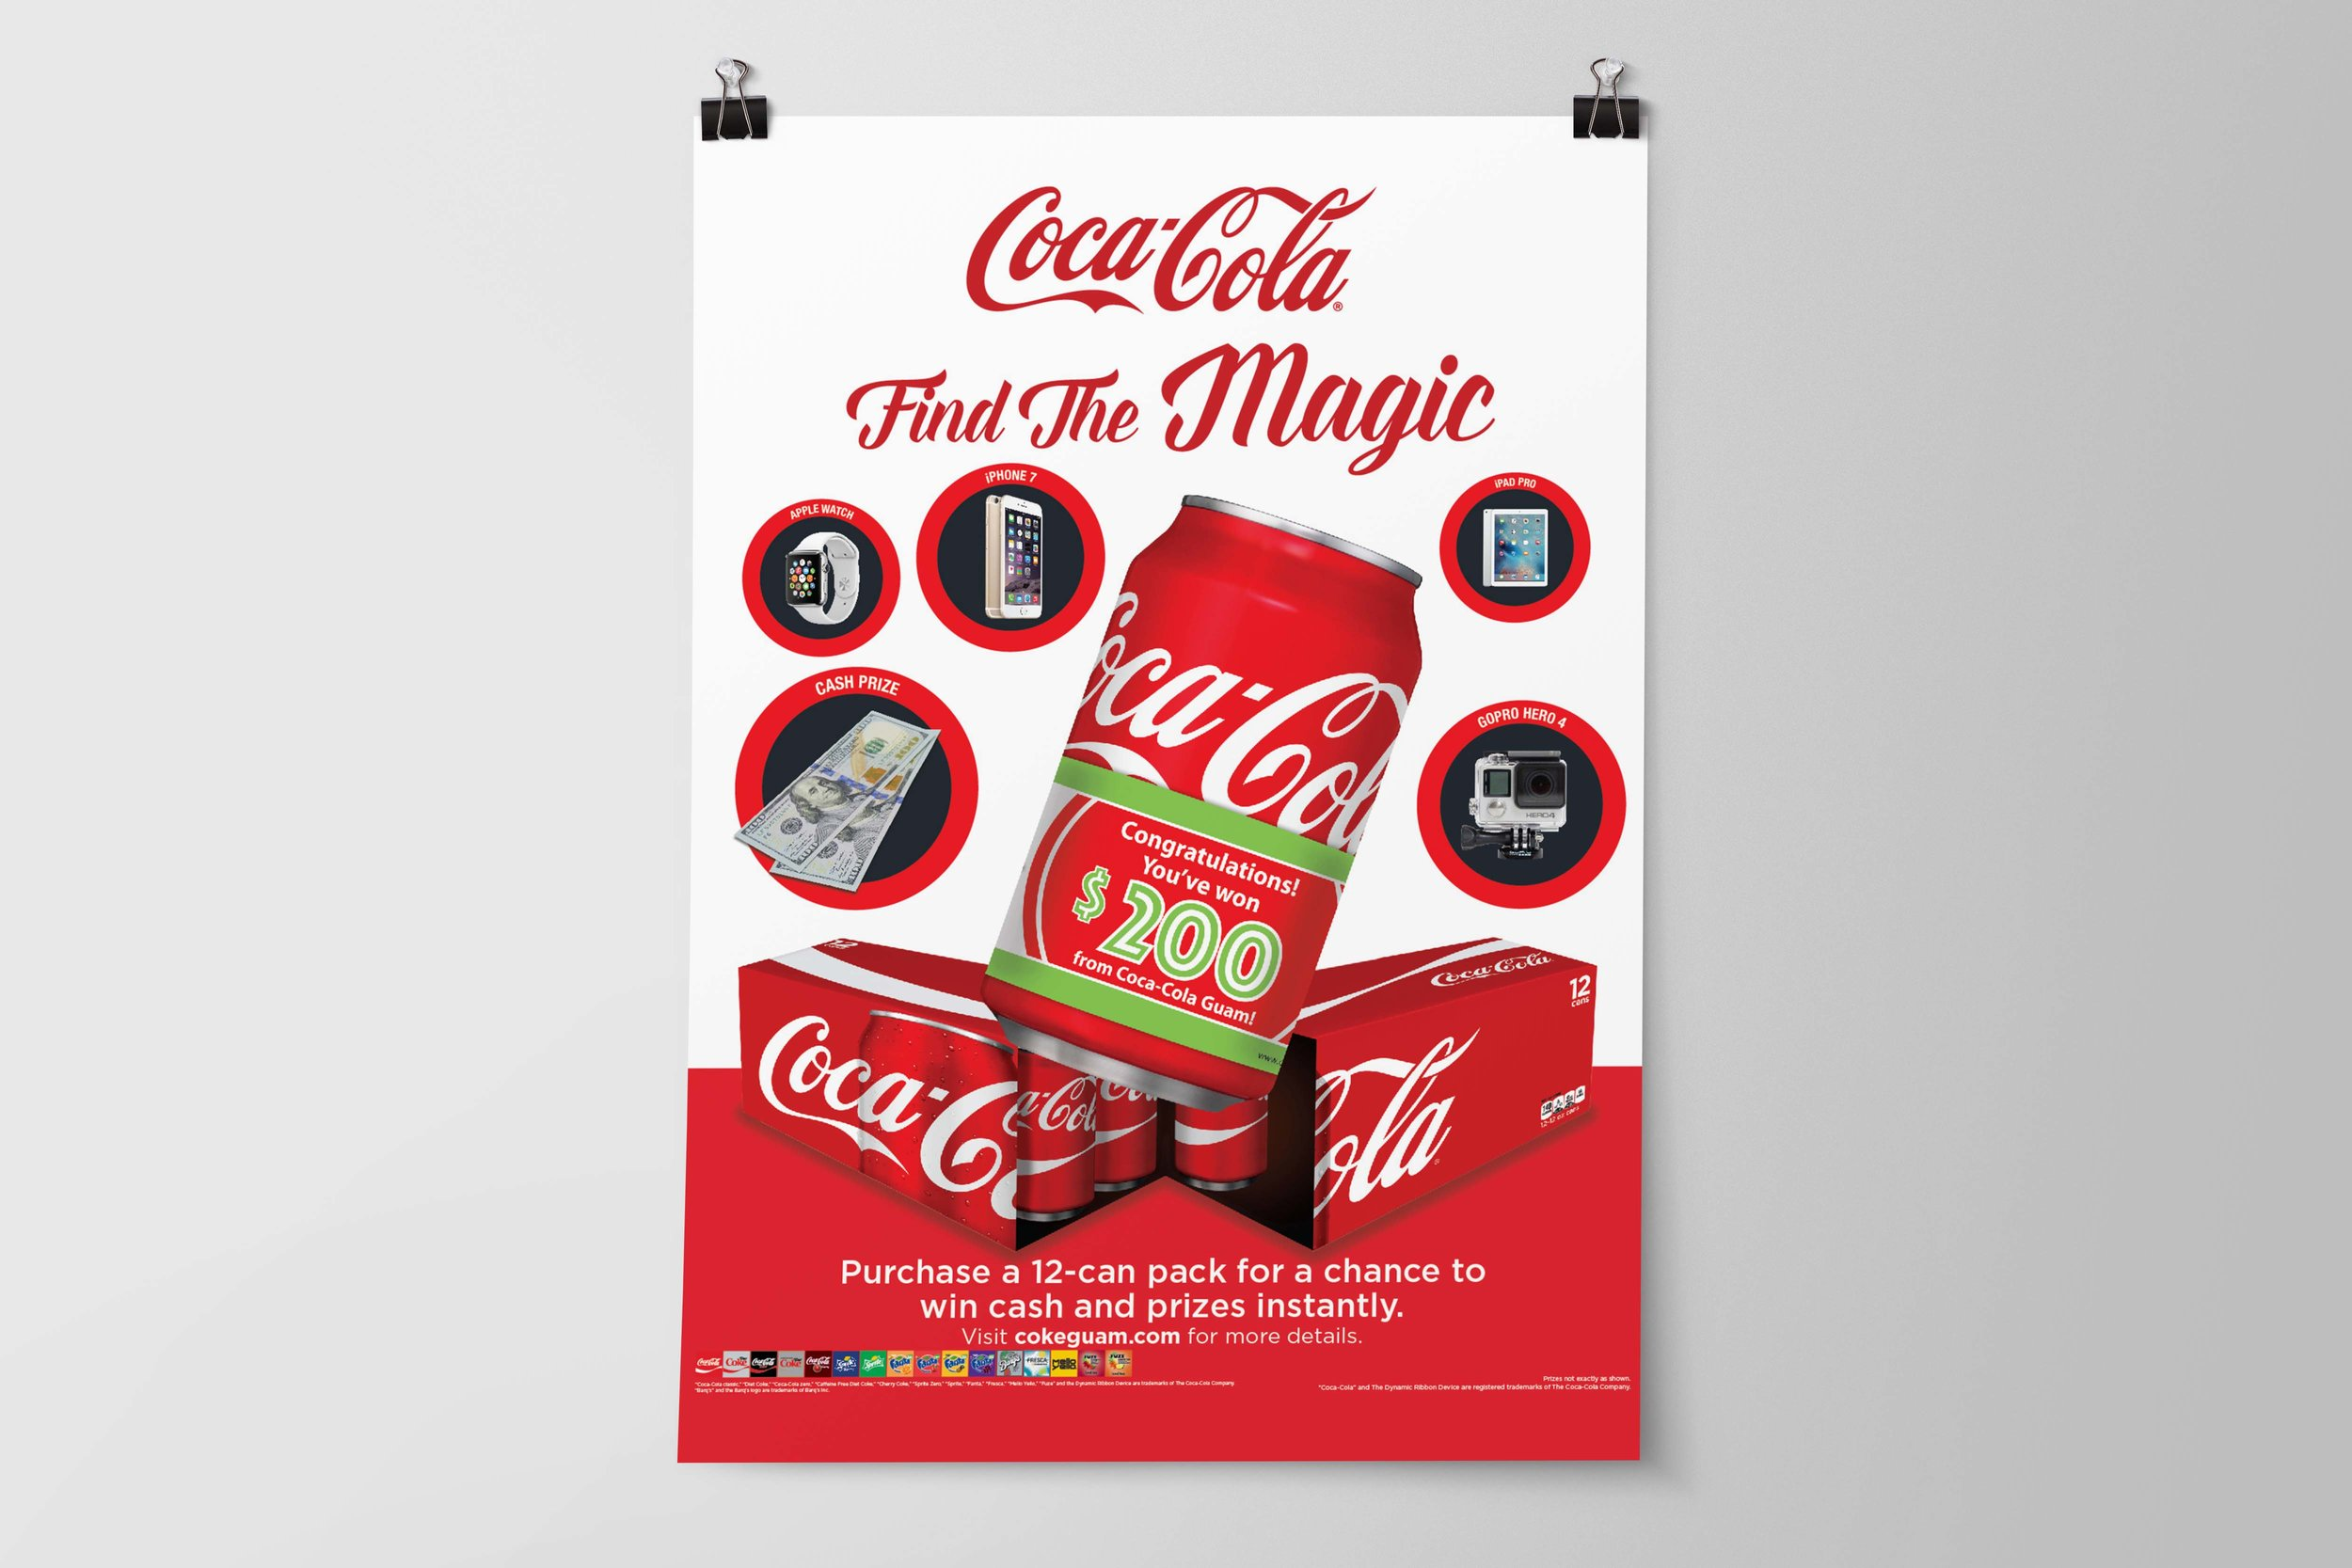 Coke_SaveTheMagic_mockup.jpg